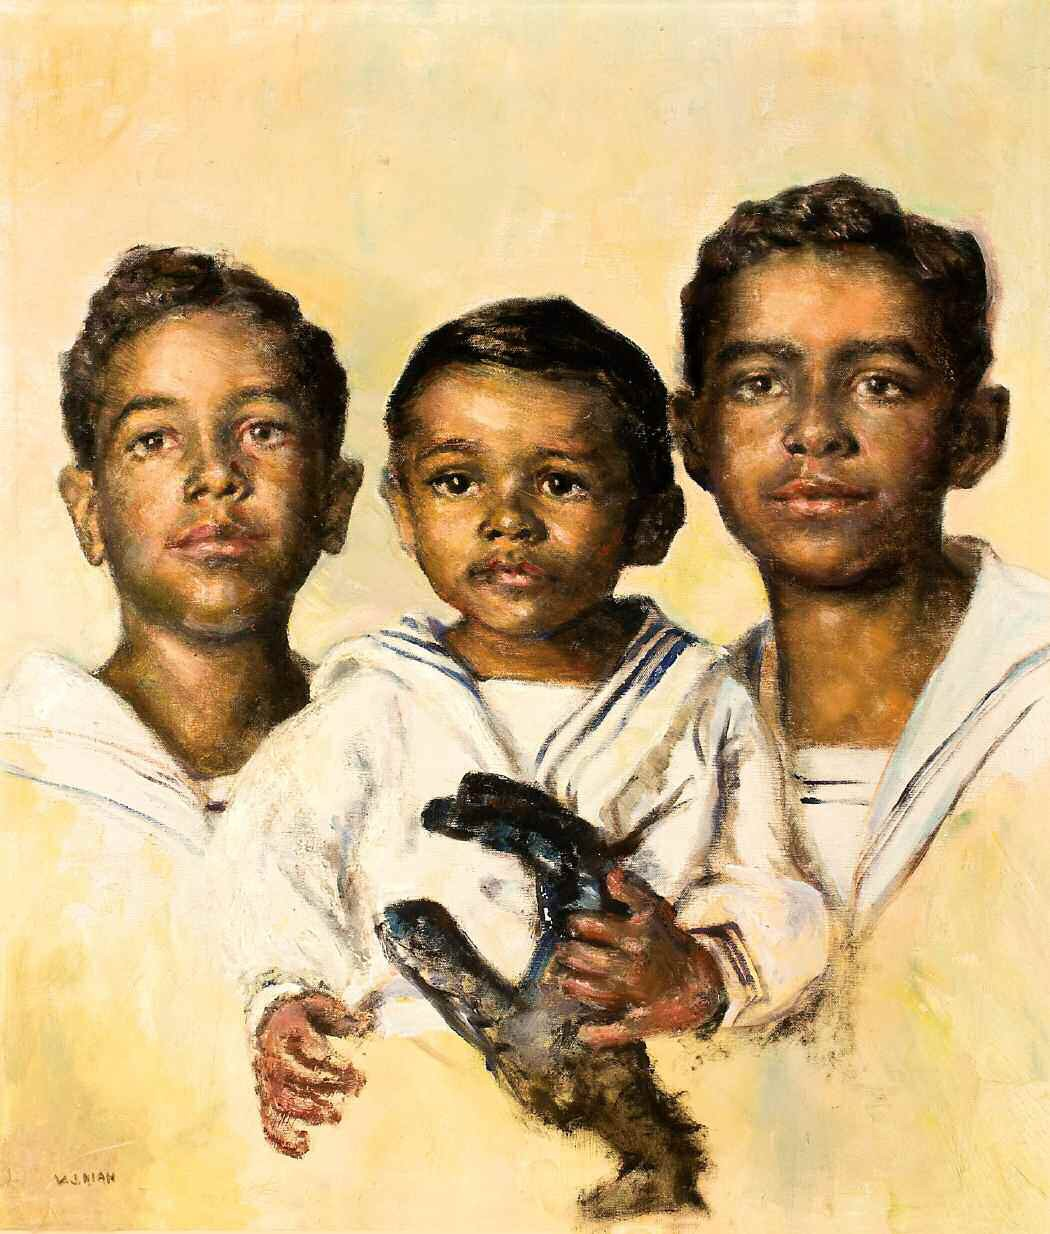 Keiffer, Michael, and Clarence Mitchell (My Nephews), oil on canvas, by Virginia Kiah c. 1940s-50.